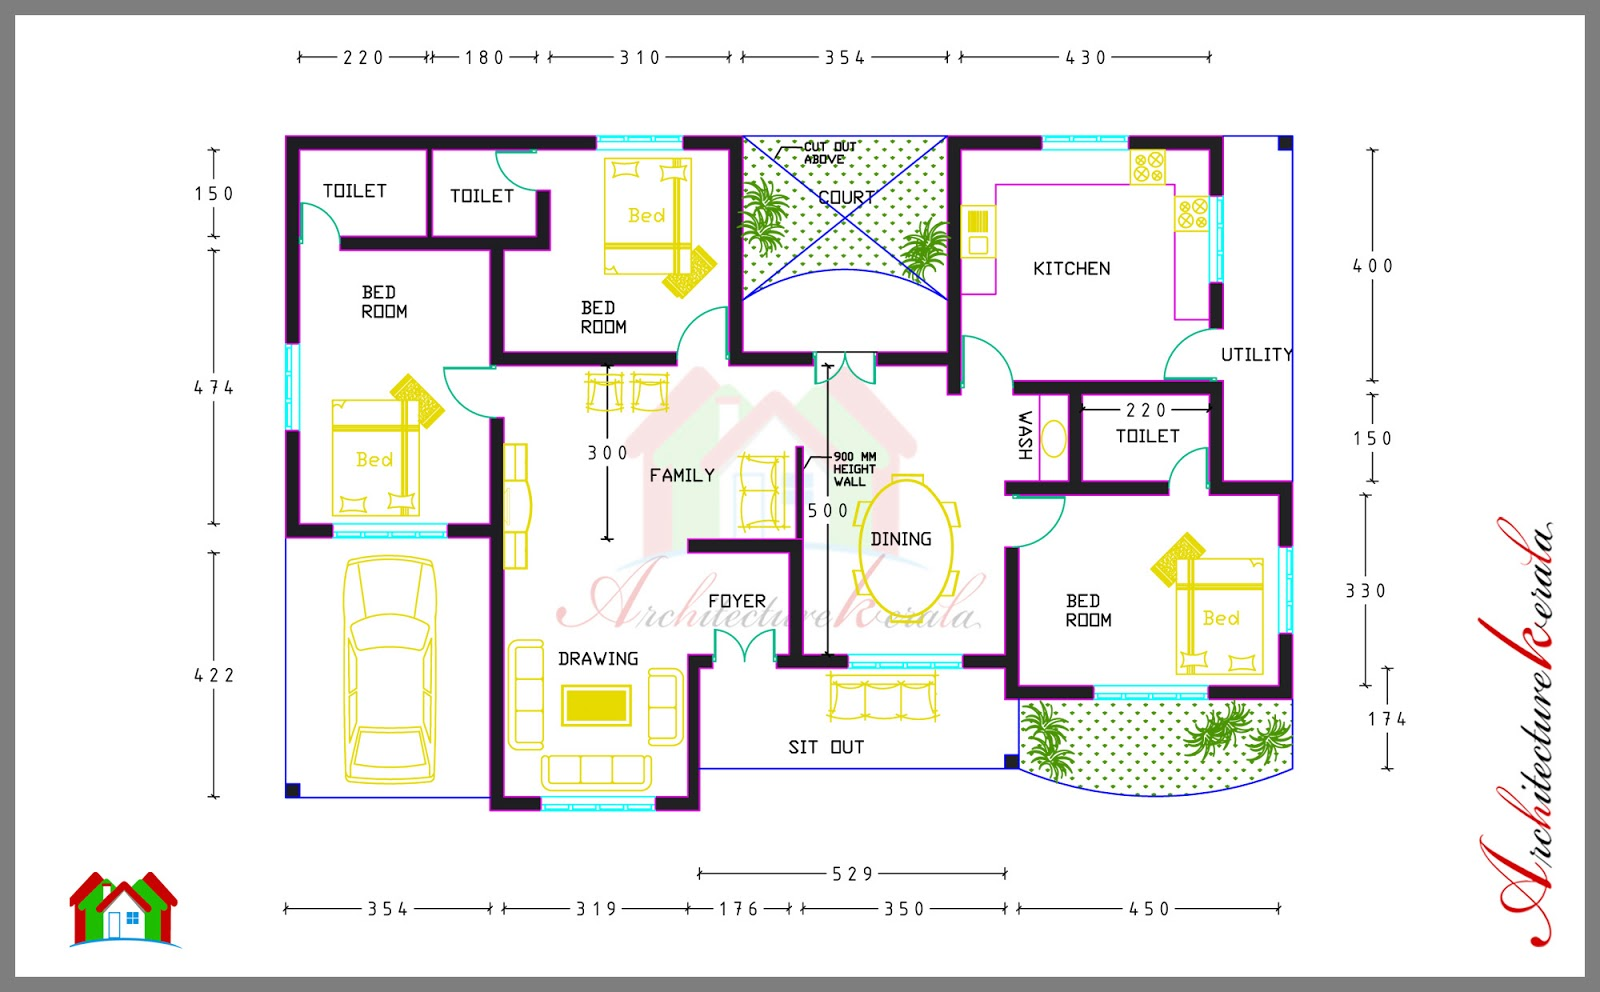 Kerala model house plans free interior design for Kerala home plans free